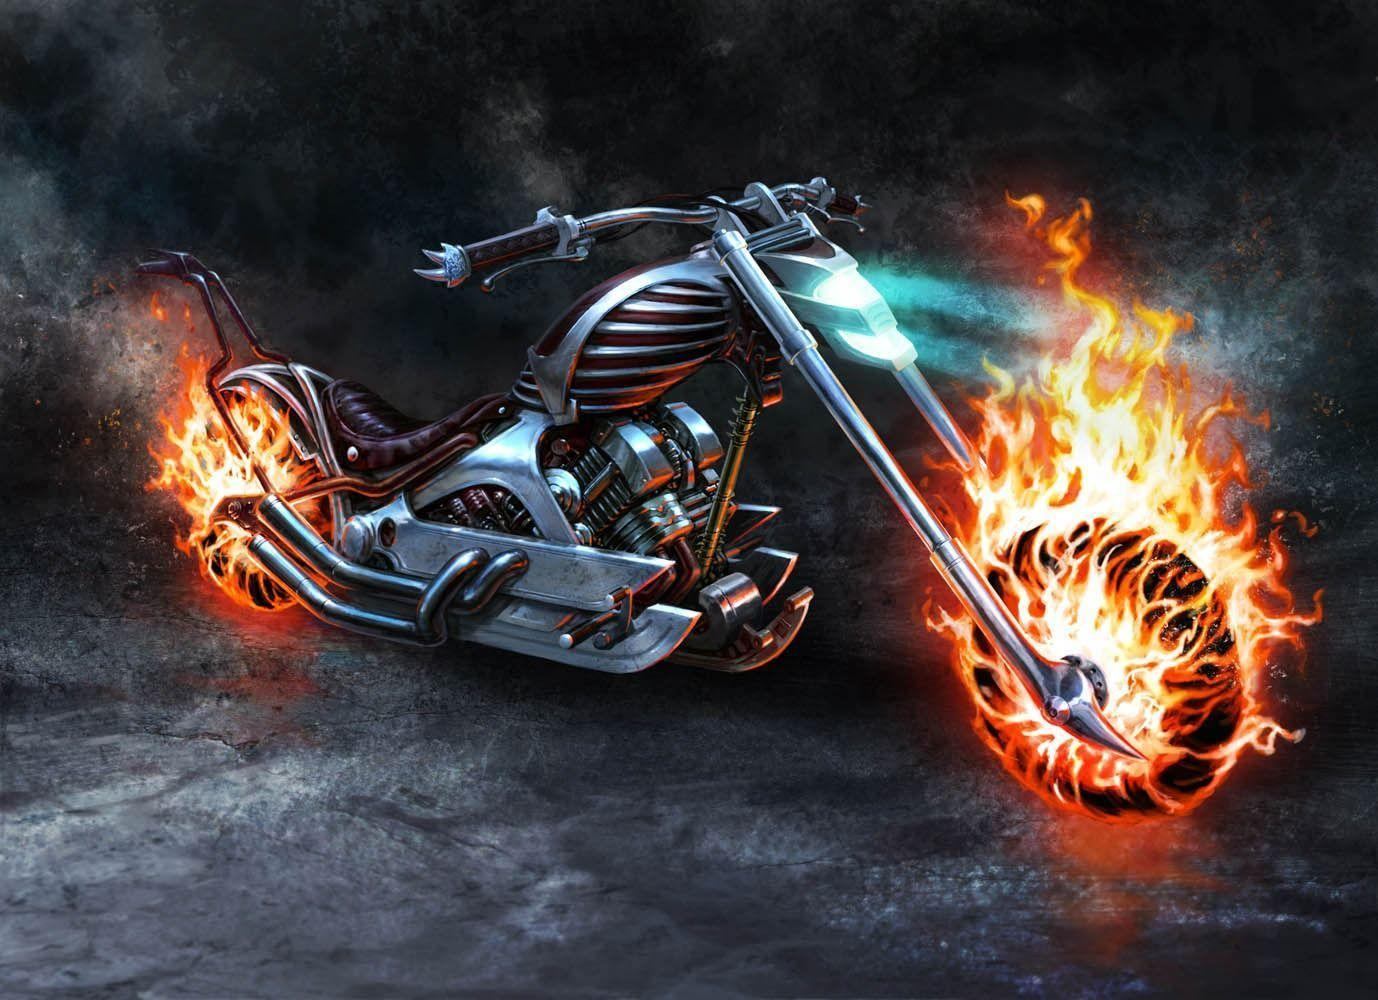 Ghost Rider Bike On Fire Wallpapers